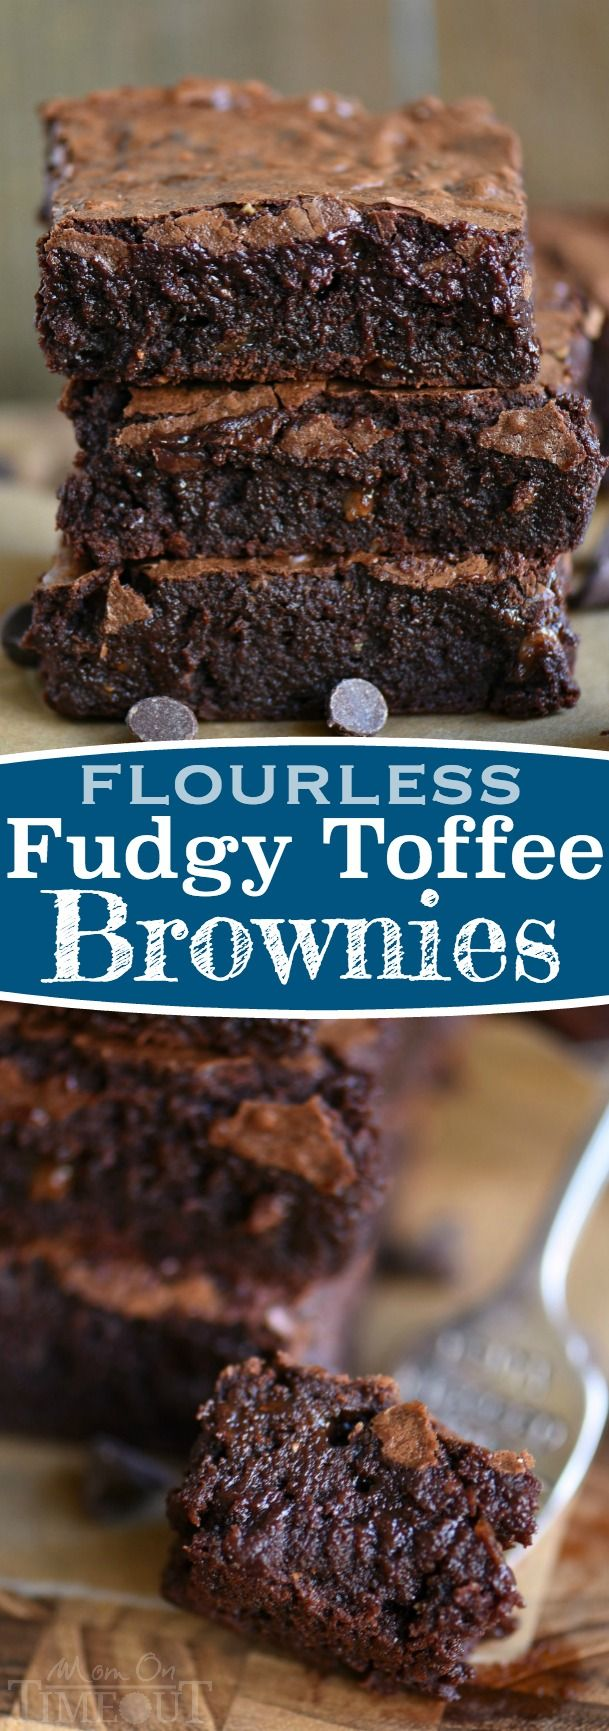 The BEST brownies I've ever had and they just happen to be naturally gluten free! Made without any